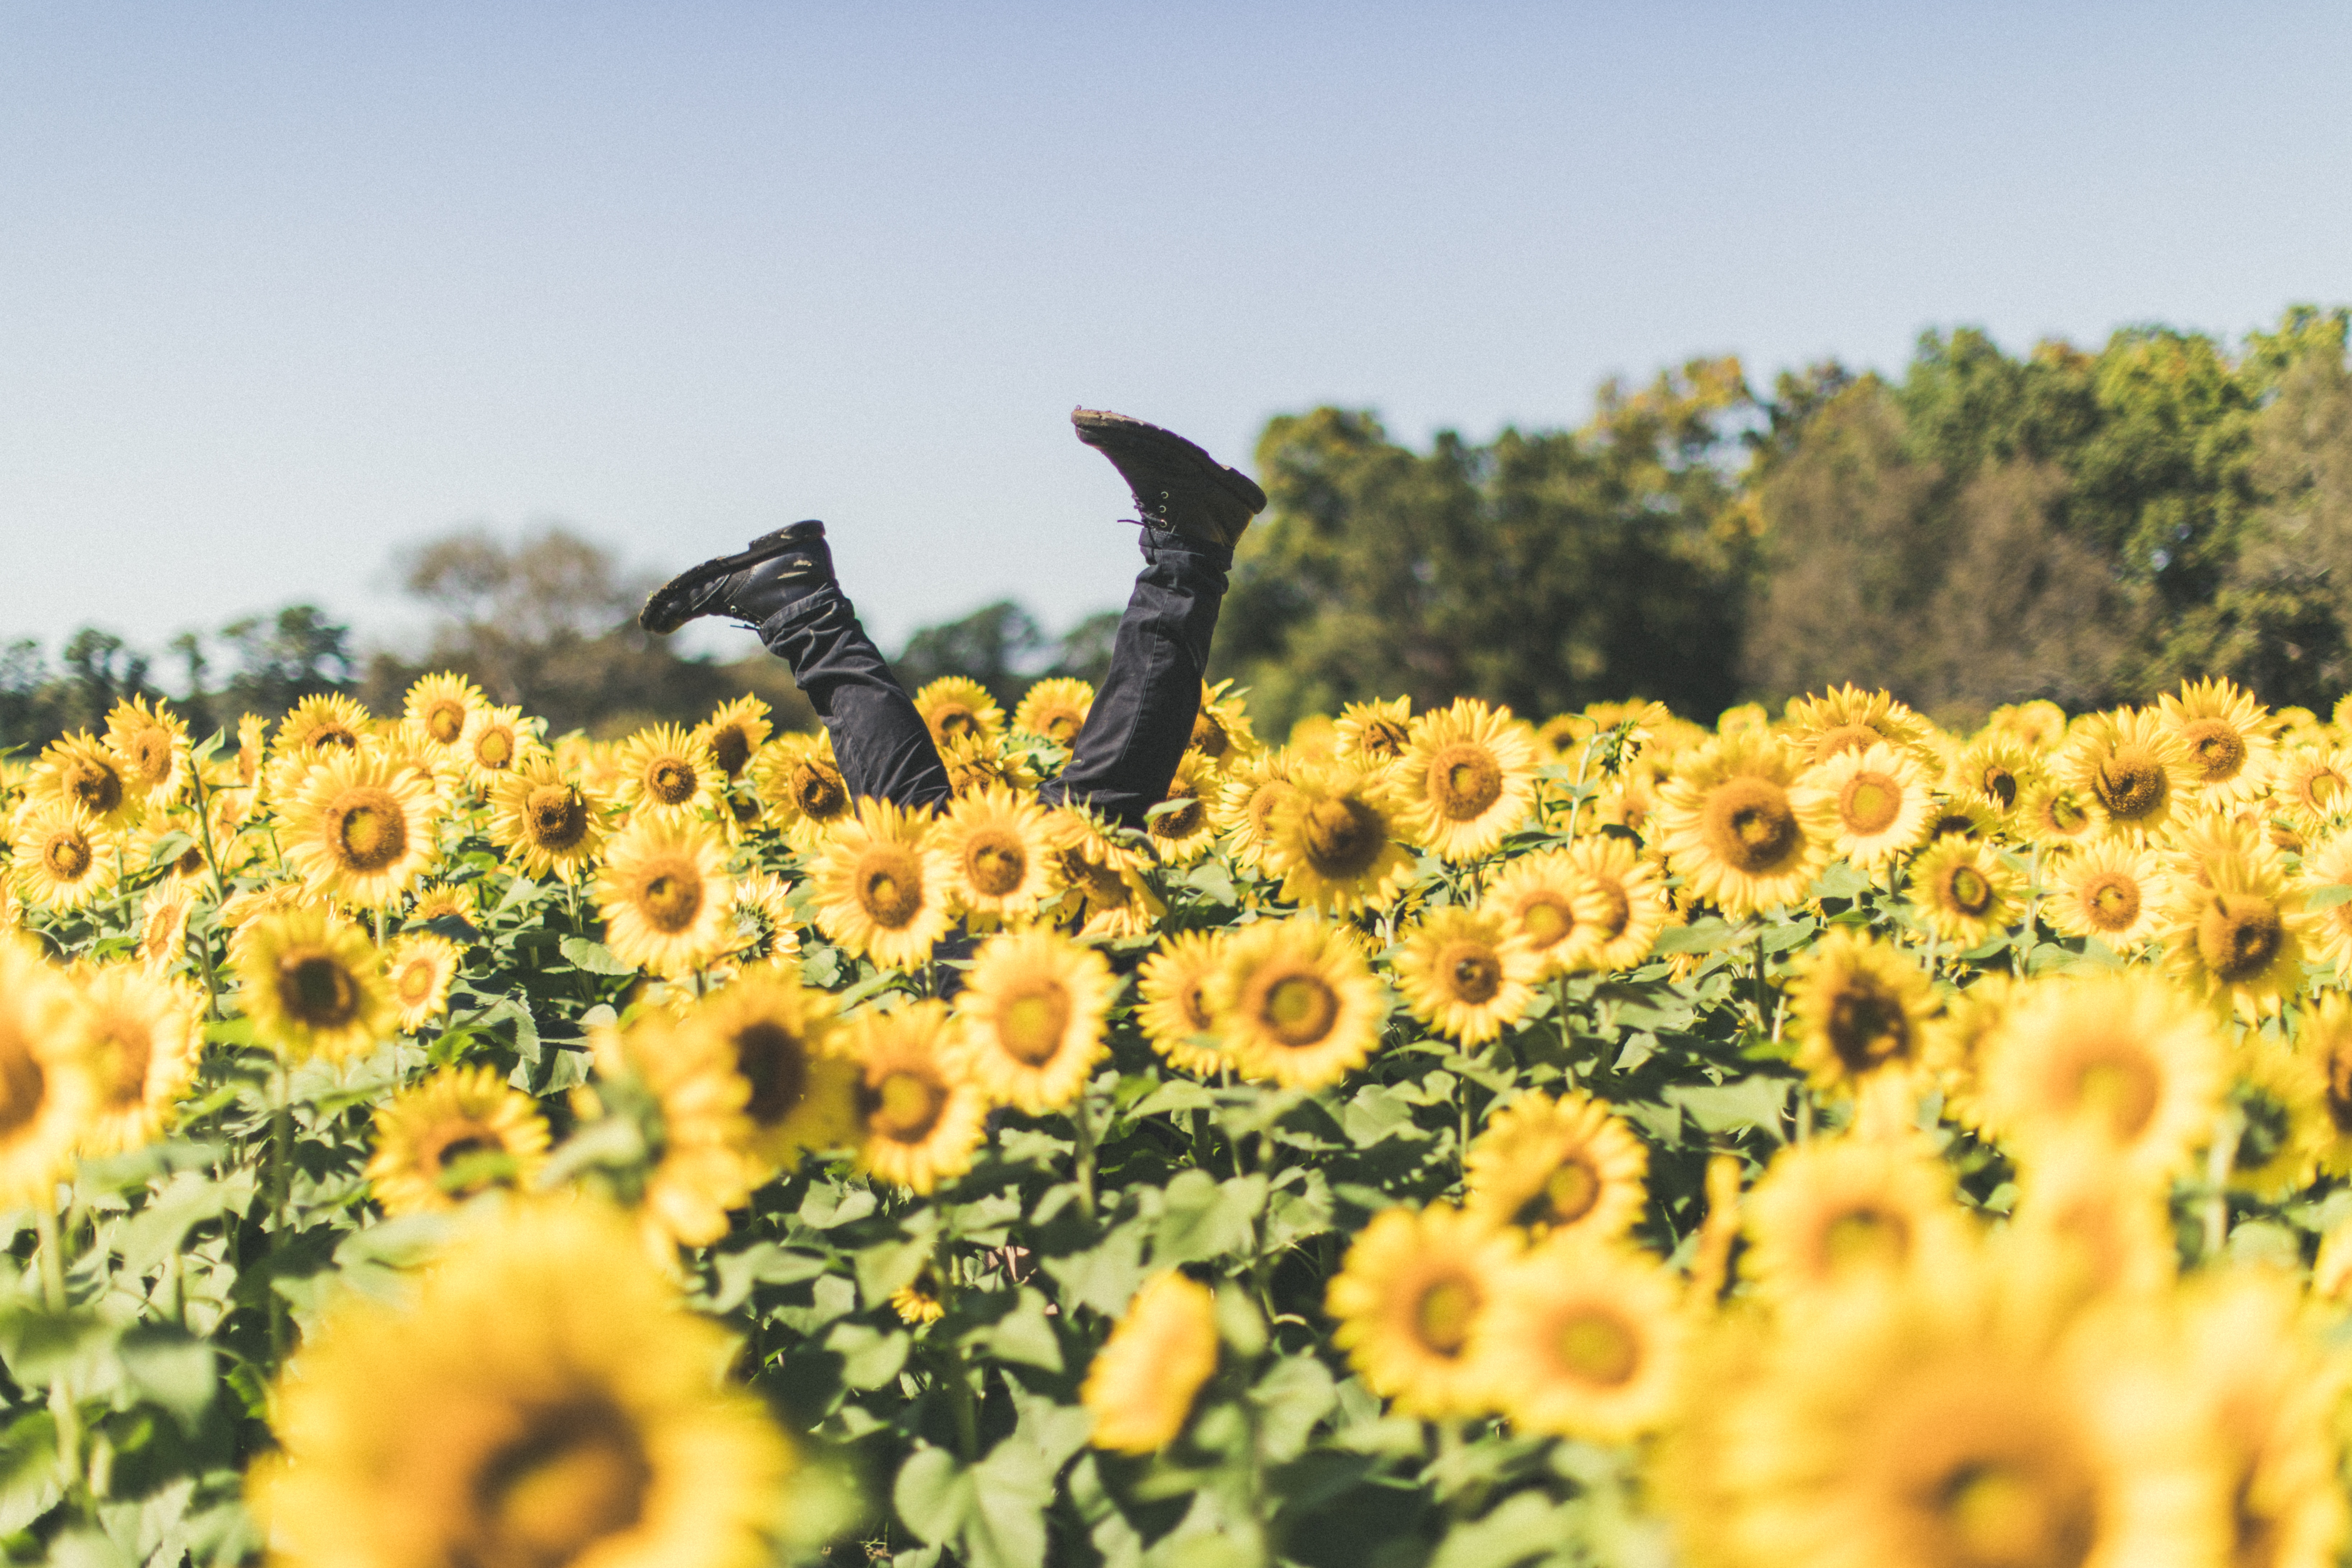 legs sticking out of a field of sunflowers